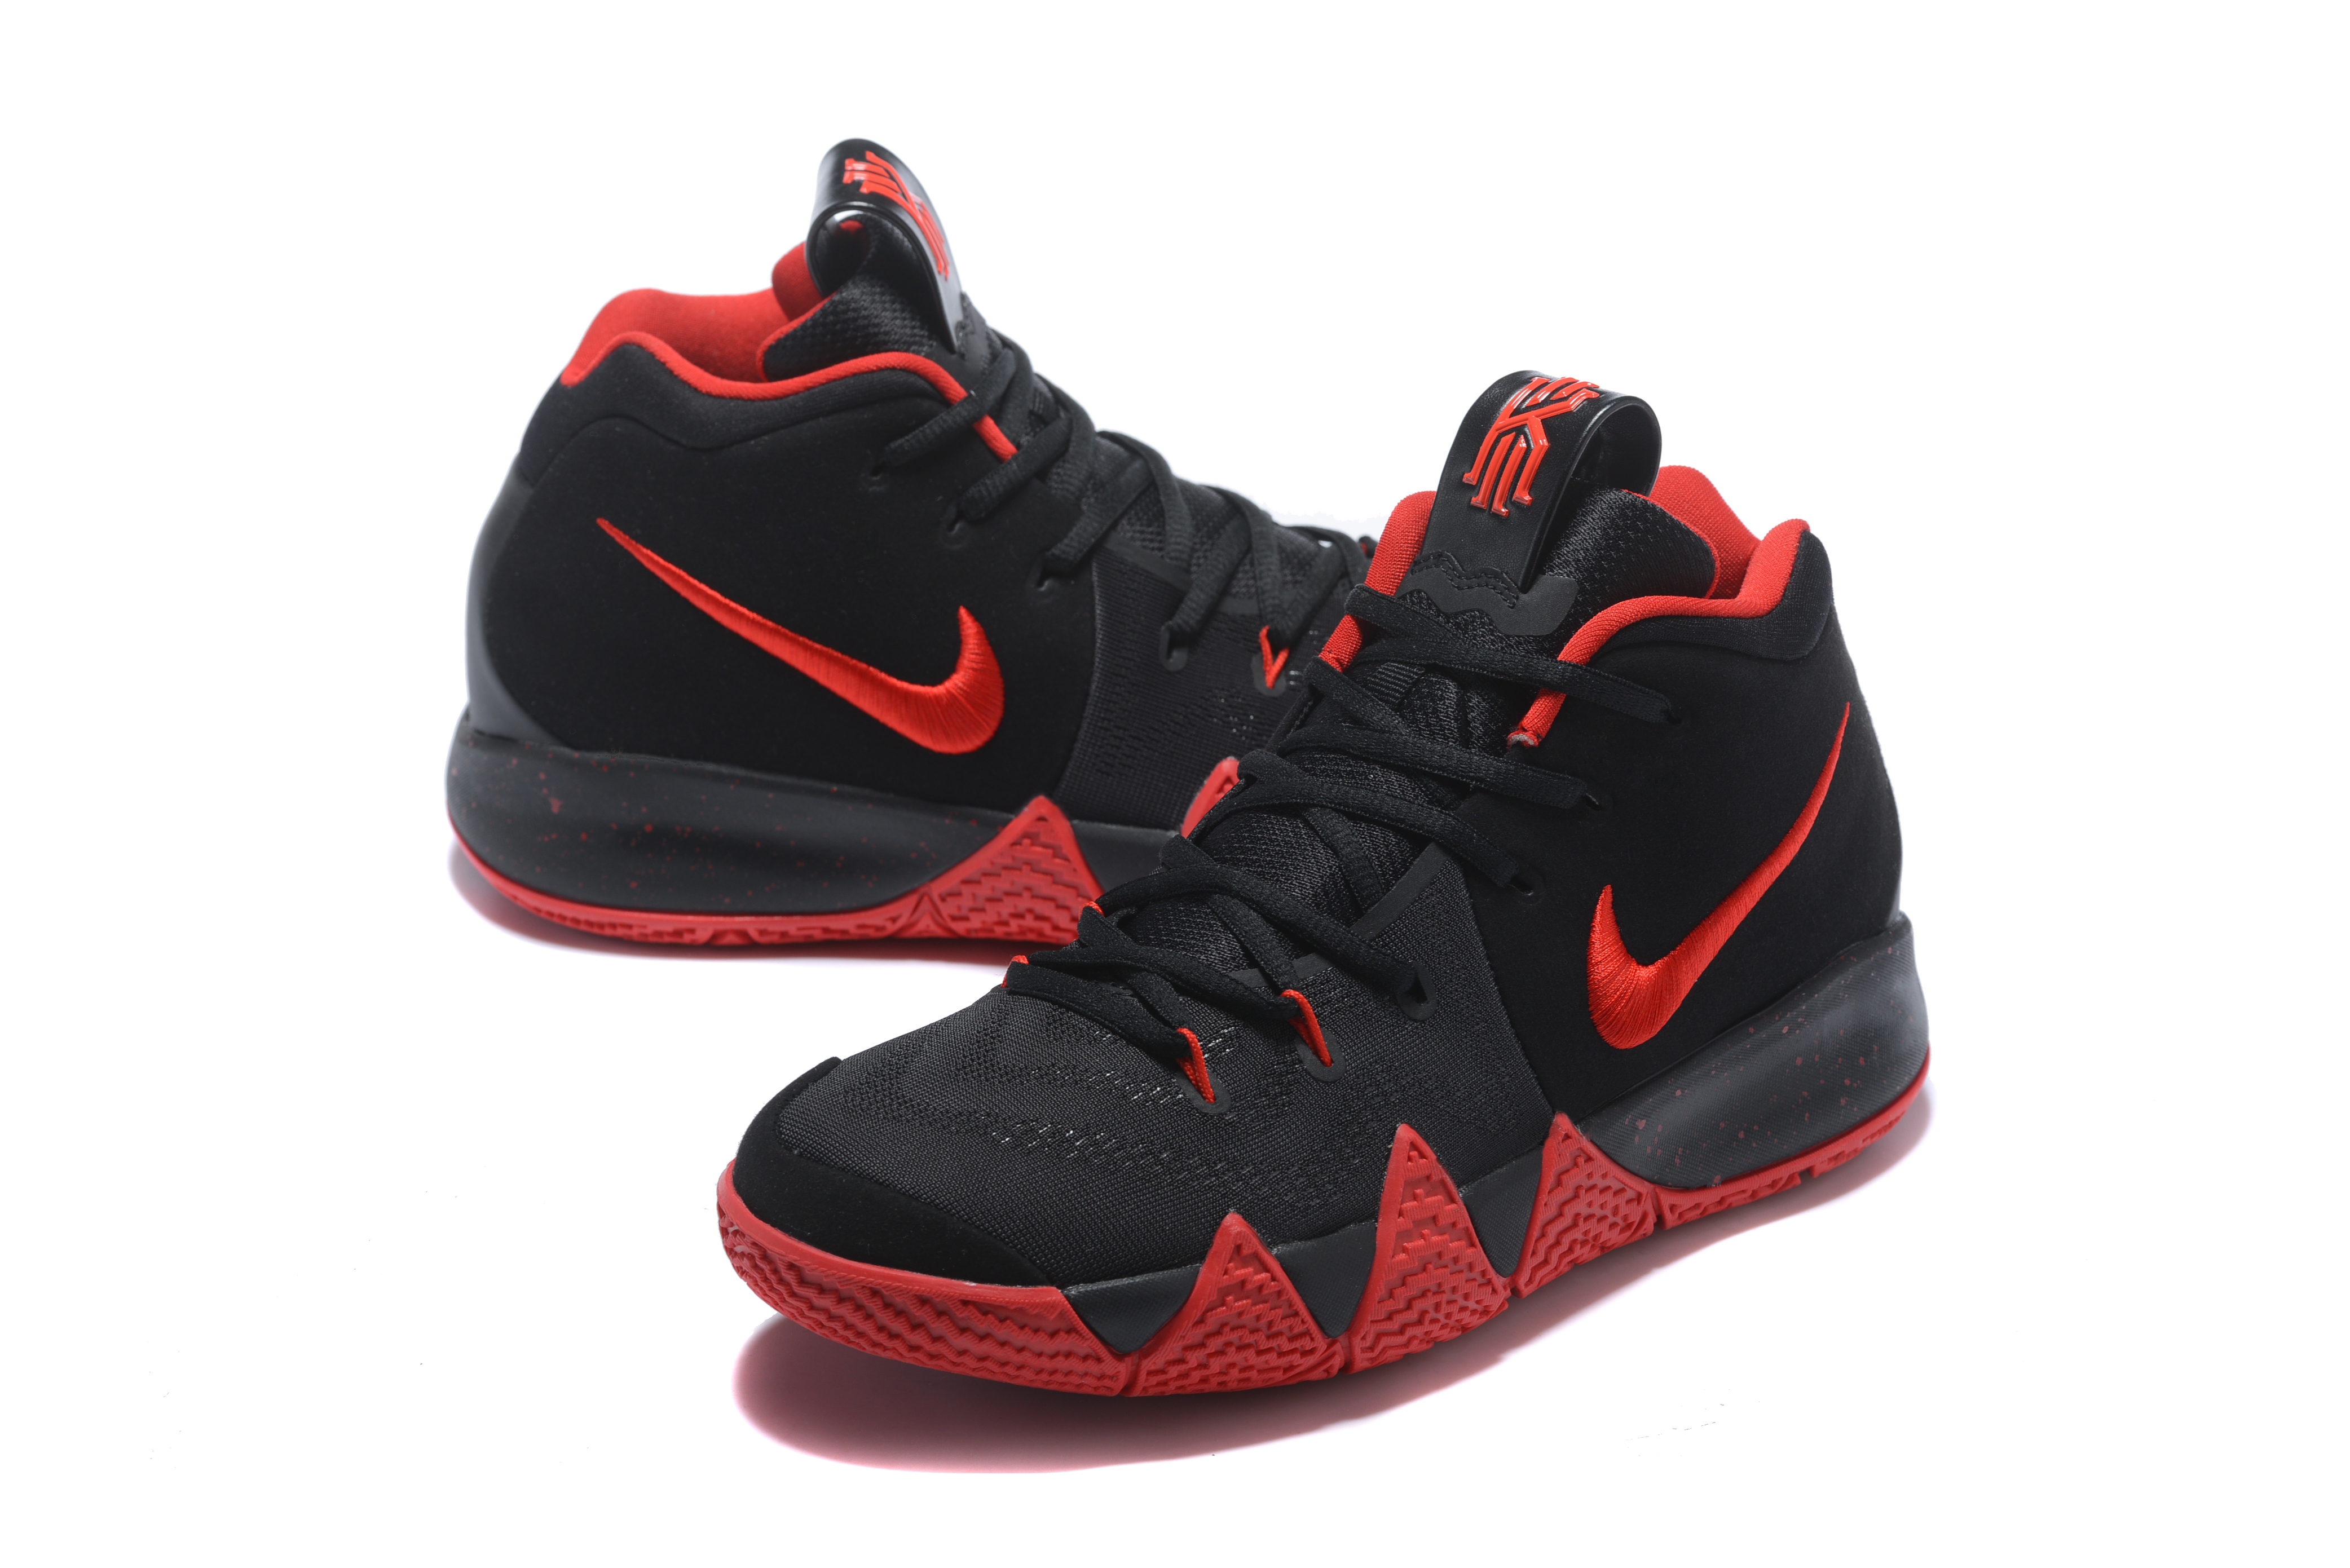 Nike Kyrie Irving 4 Black Red Shoes